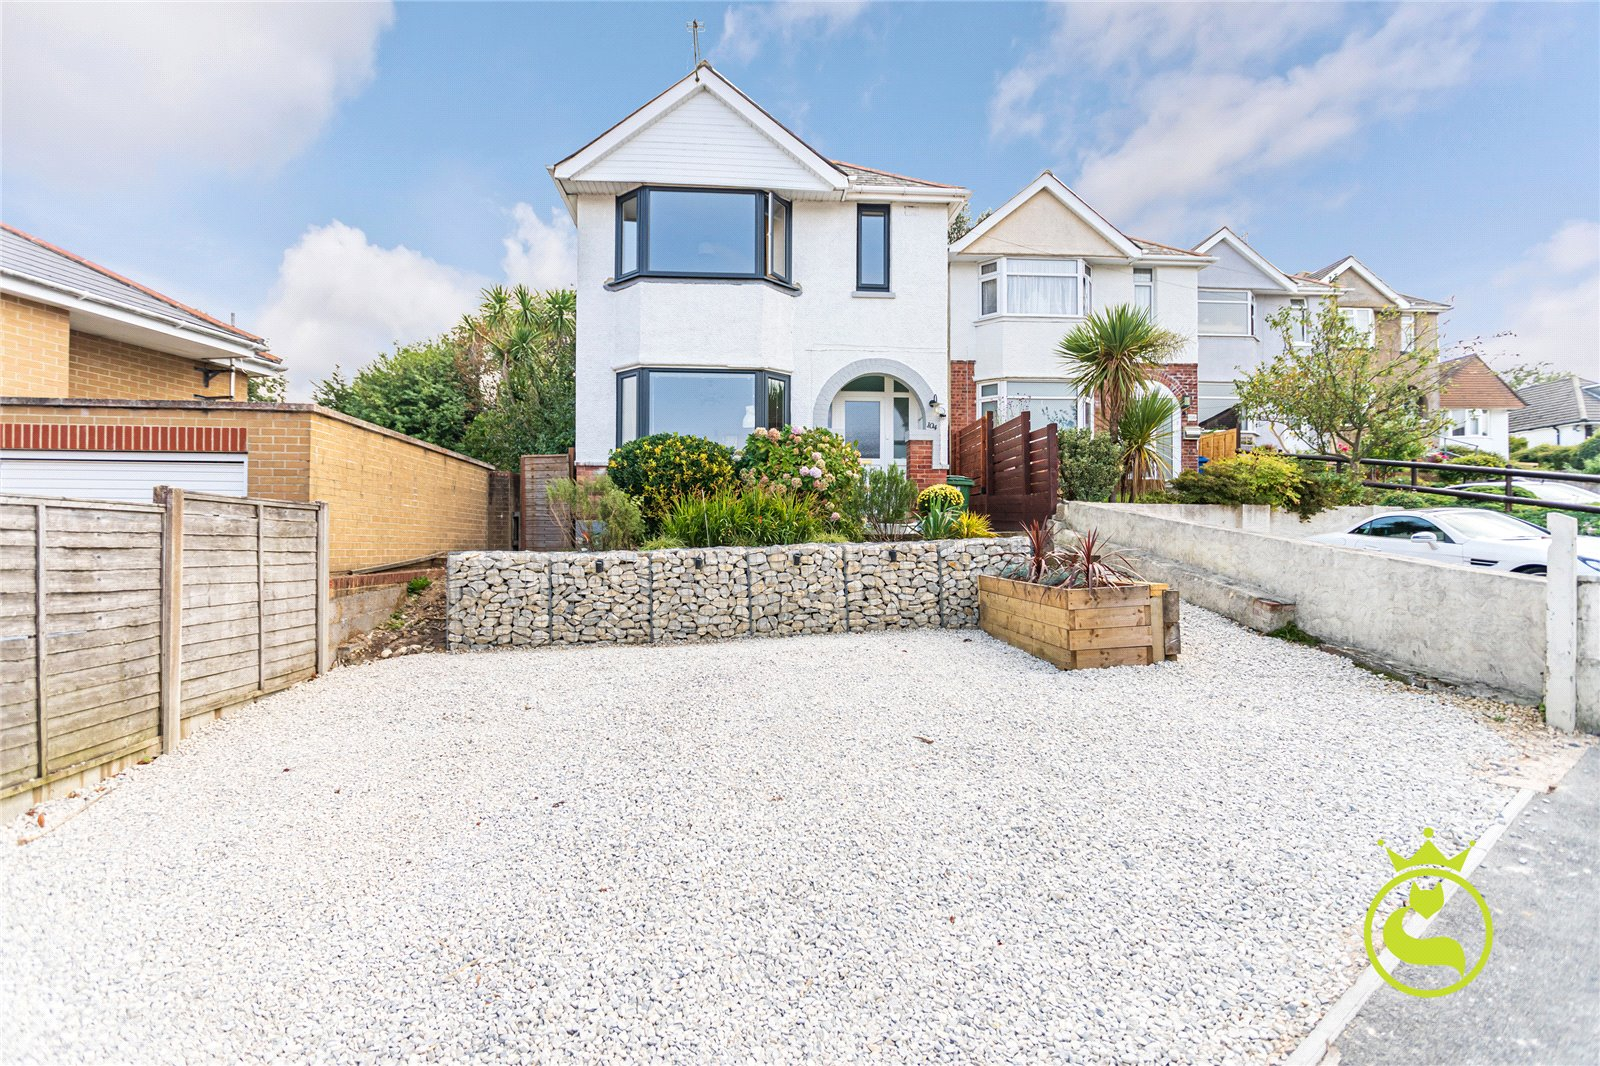 3 bed house for sale in Sheringham Road, Branksome, BH12